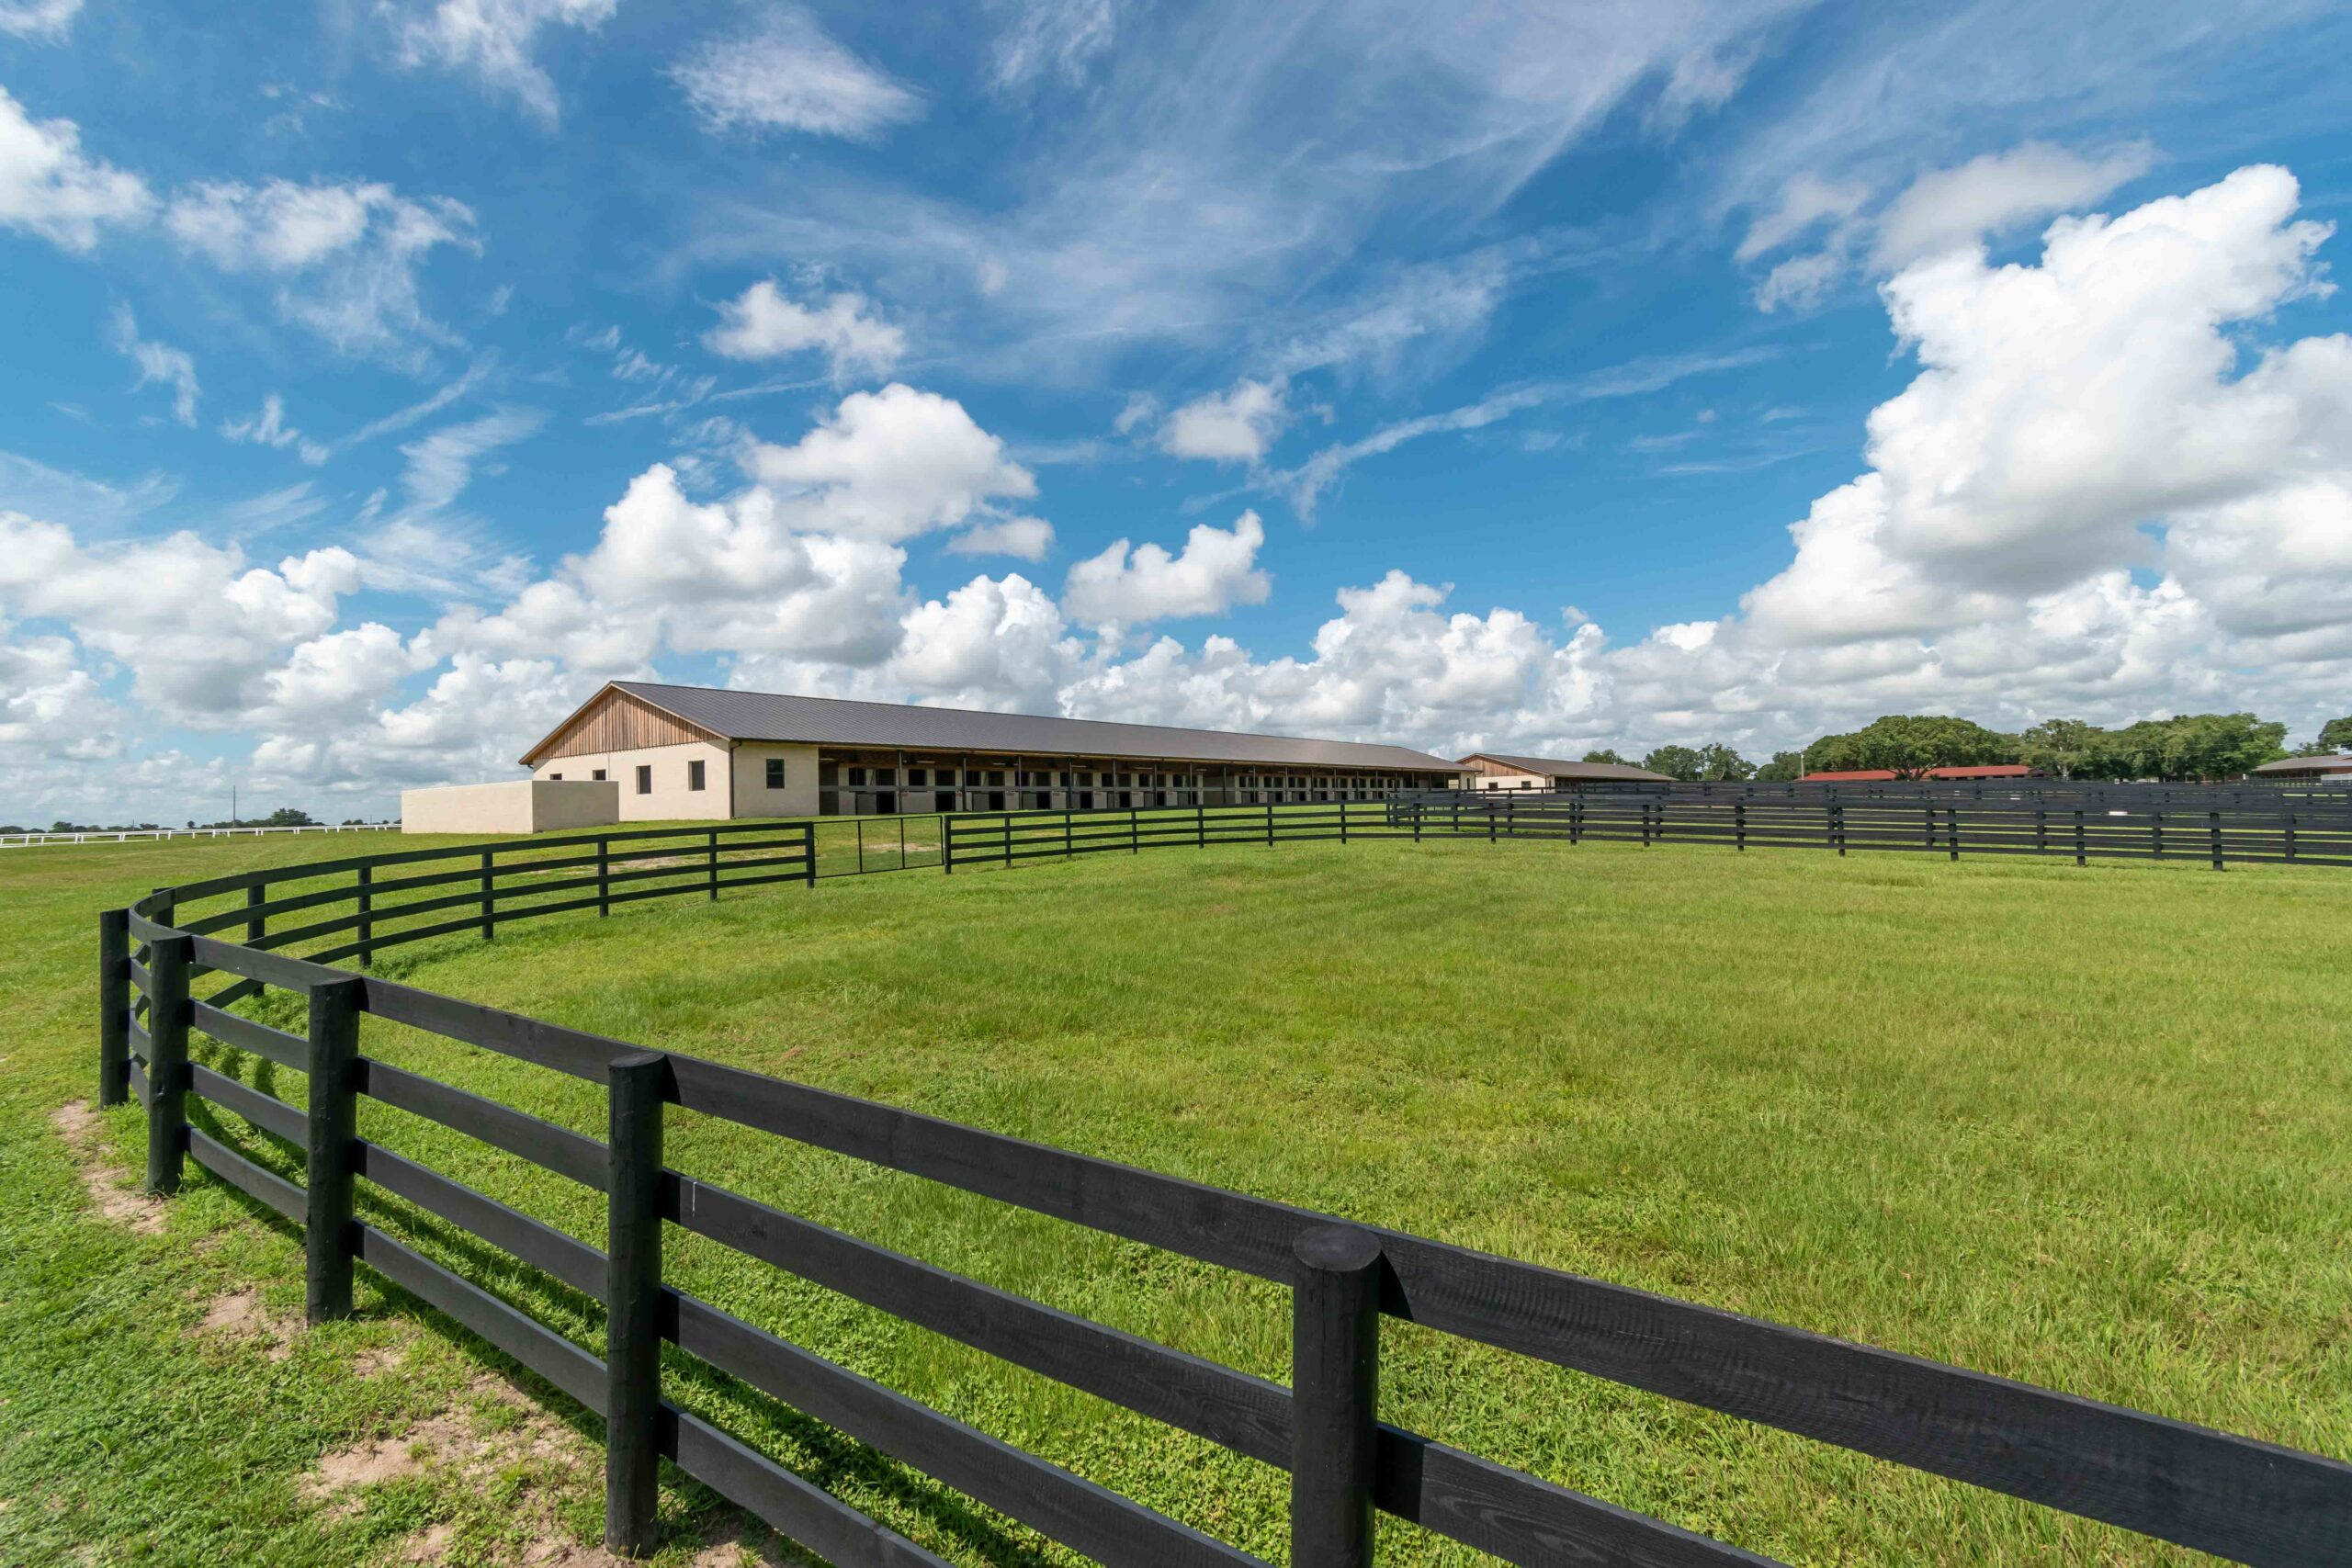 A view of a barn at Winding Oaks